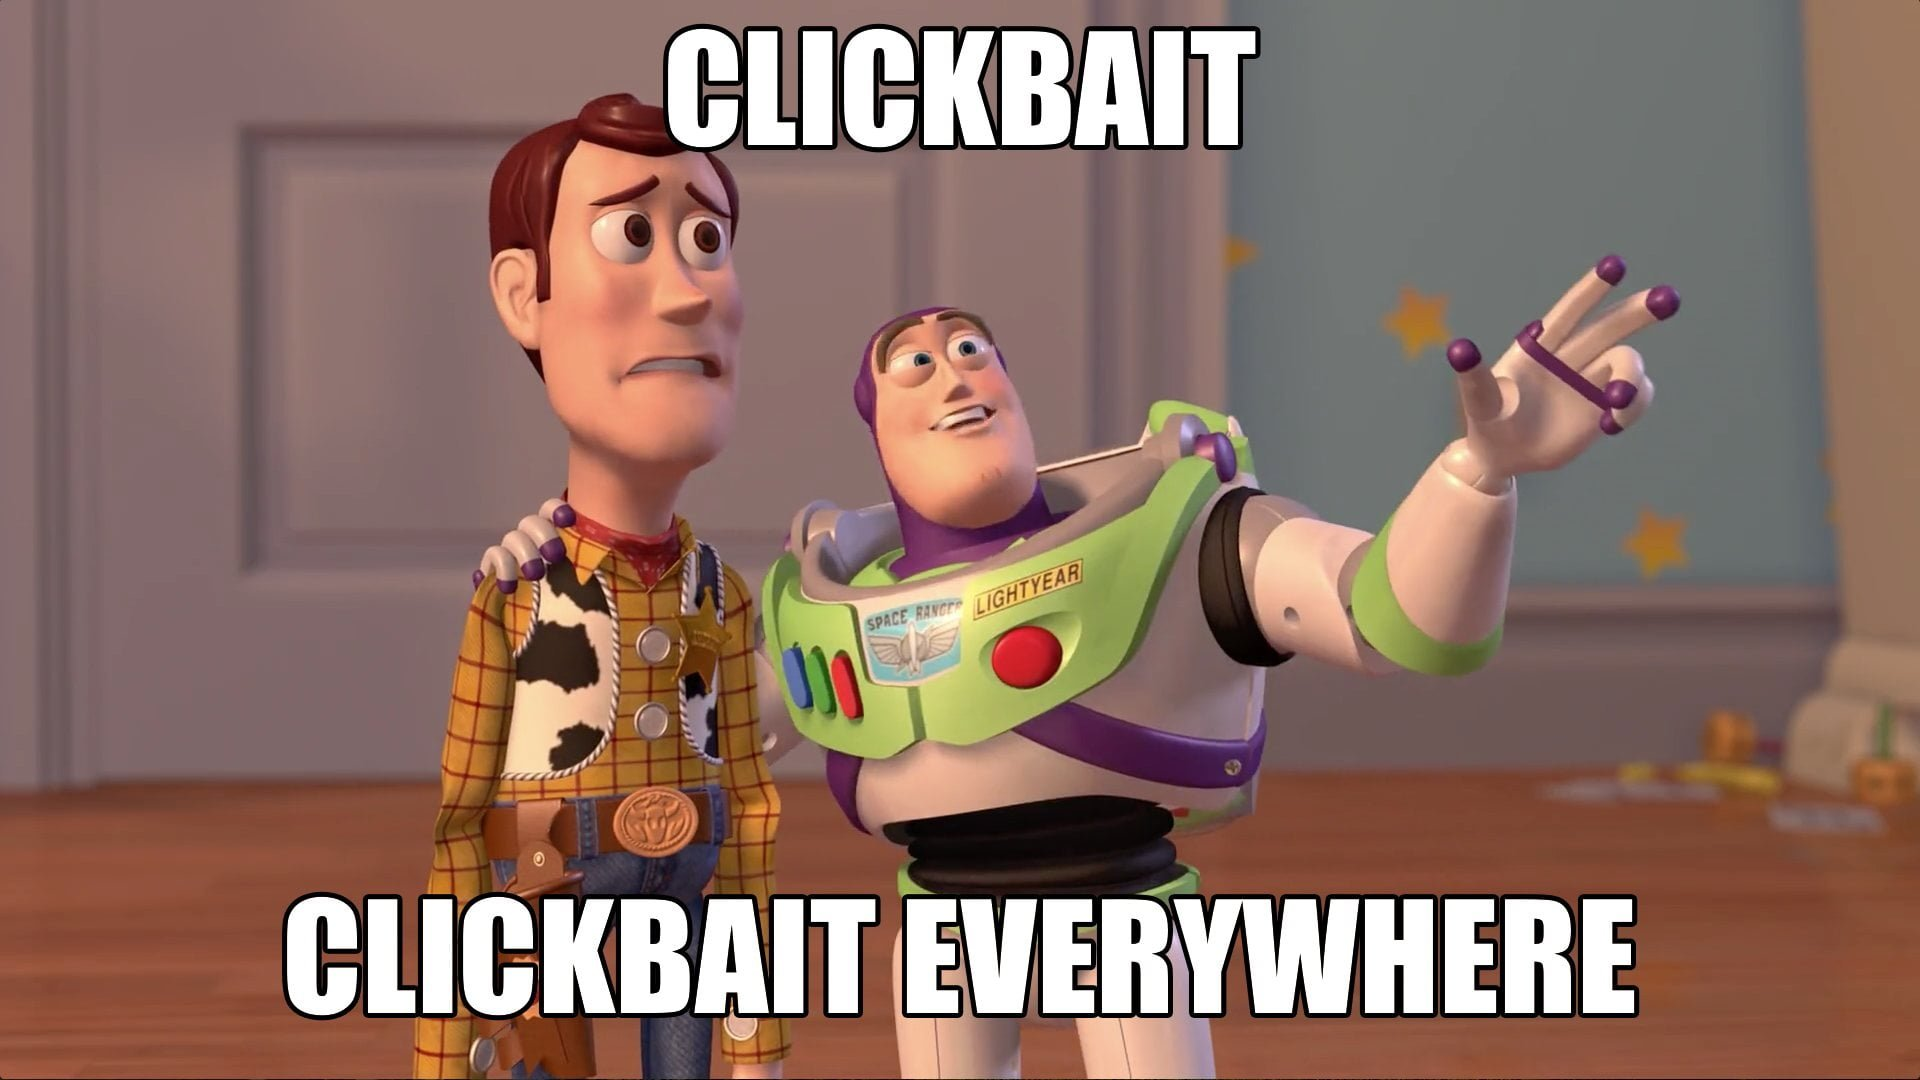 Clickbait everywhere